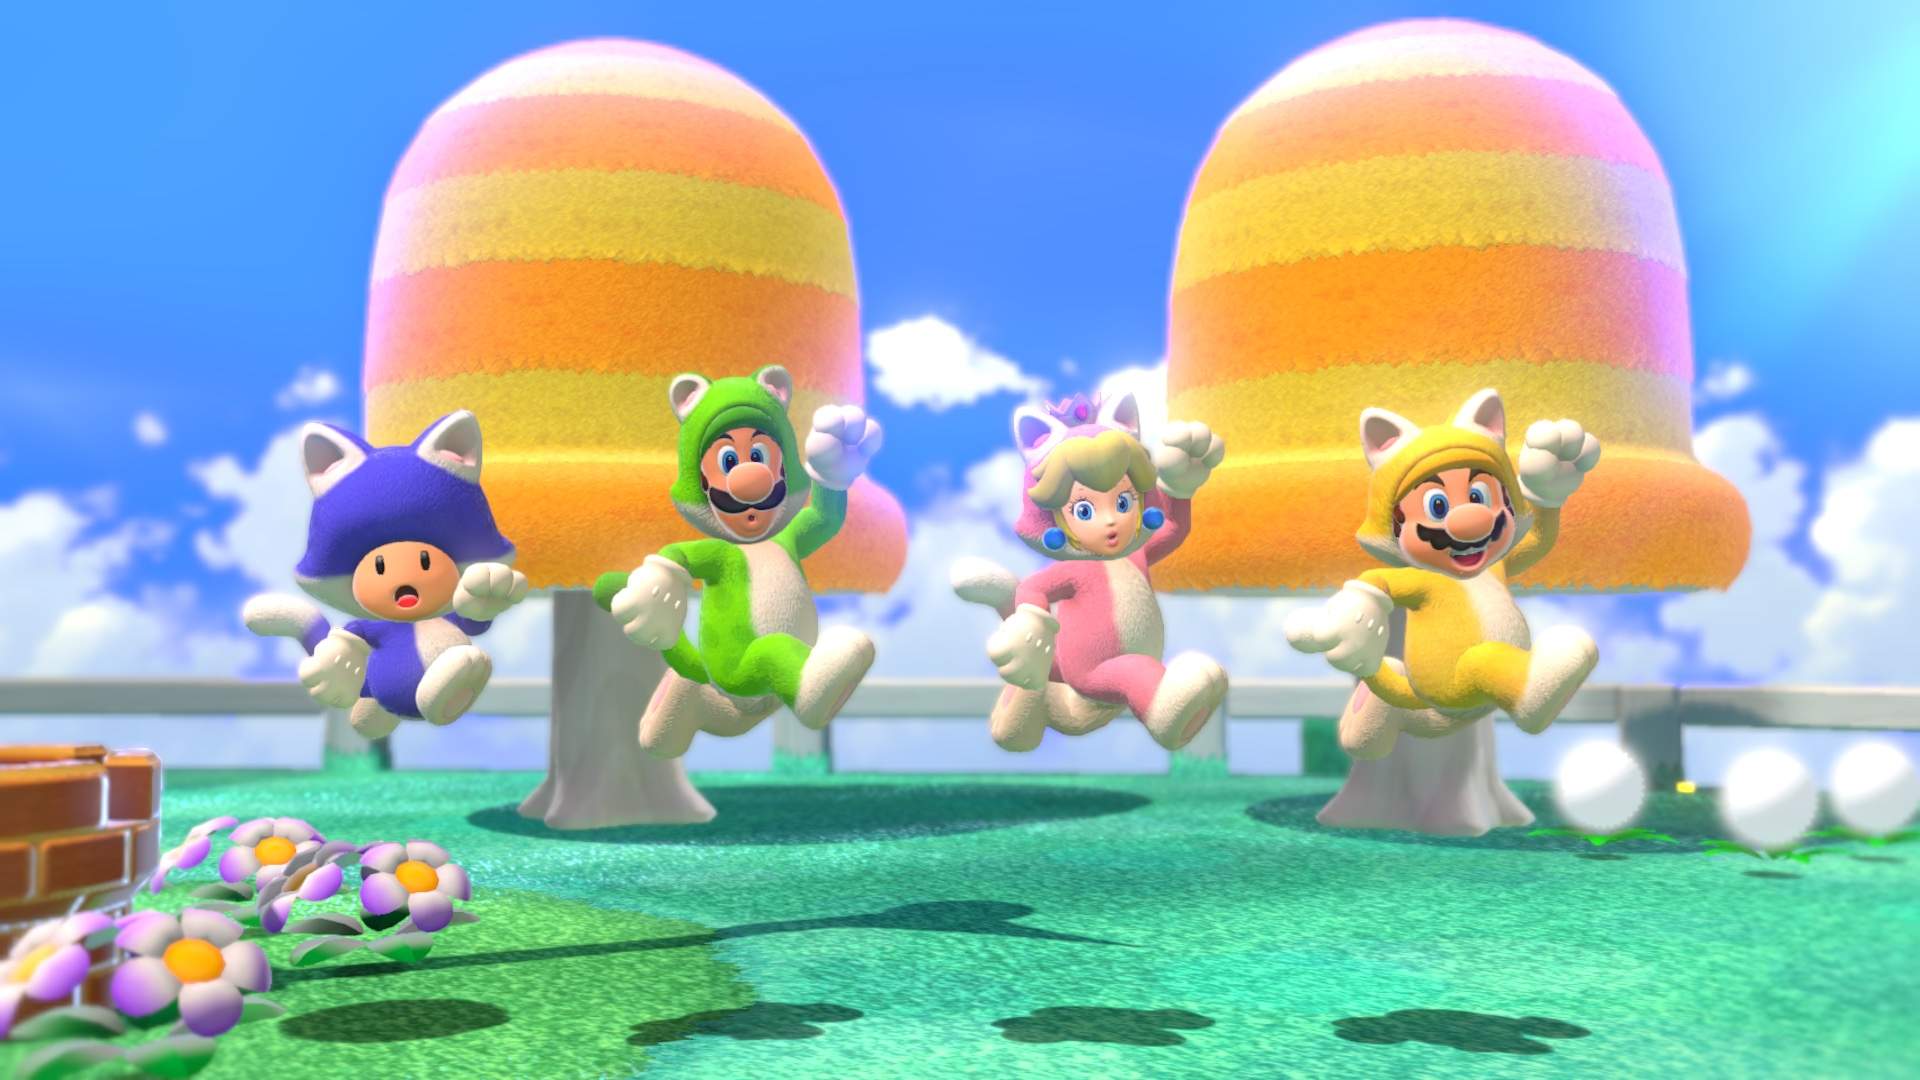 Toad, Luigi, Peach and Mario jump wearing cat suits in a screenshot from Super Mario 3D World